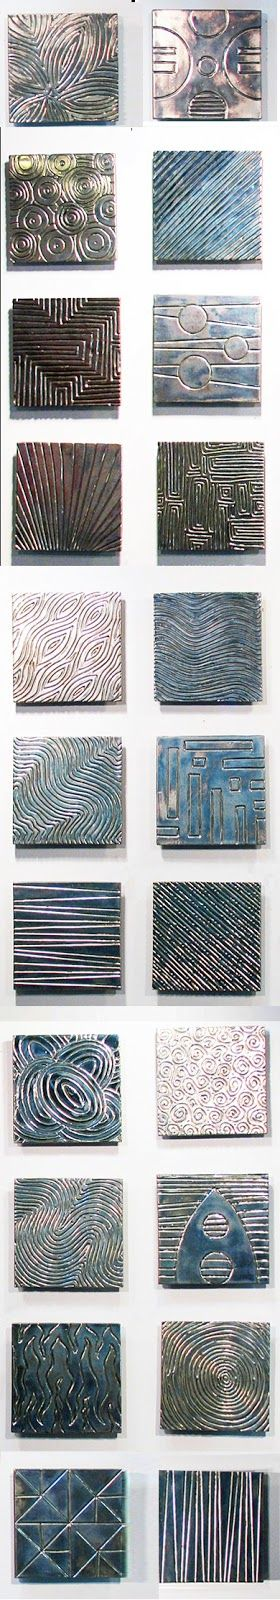 Jason Messinger Art: New Tile Murals From Jason Messinger Art